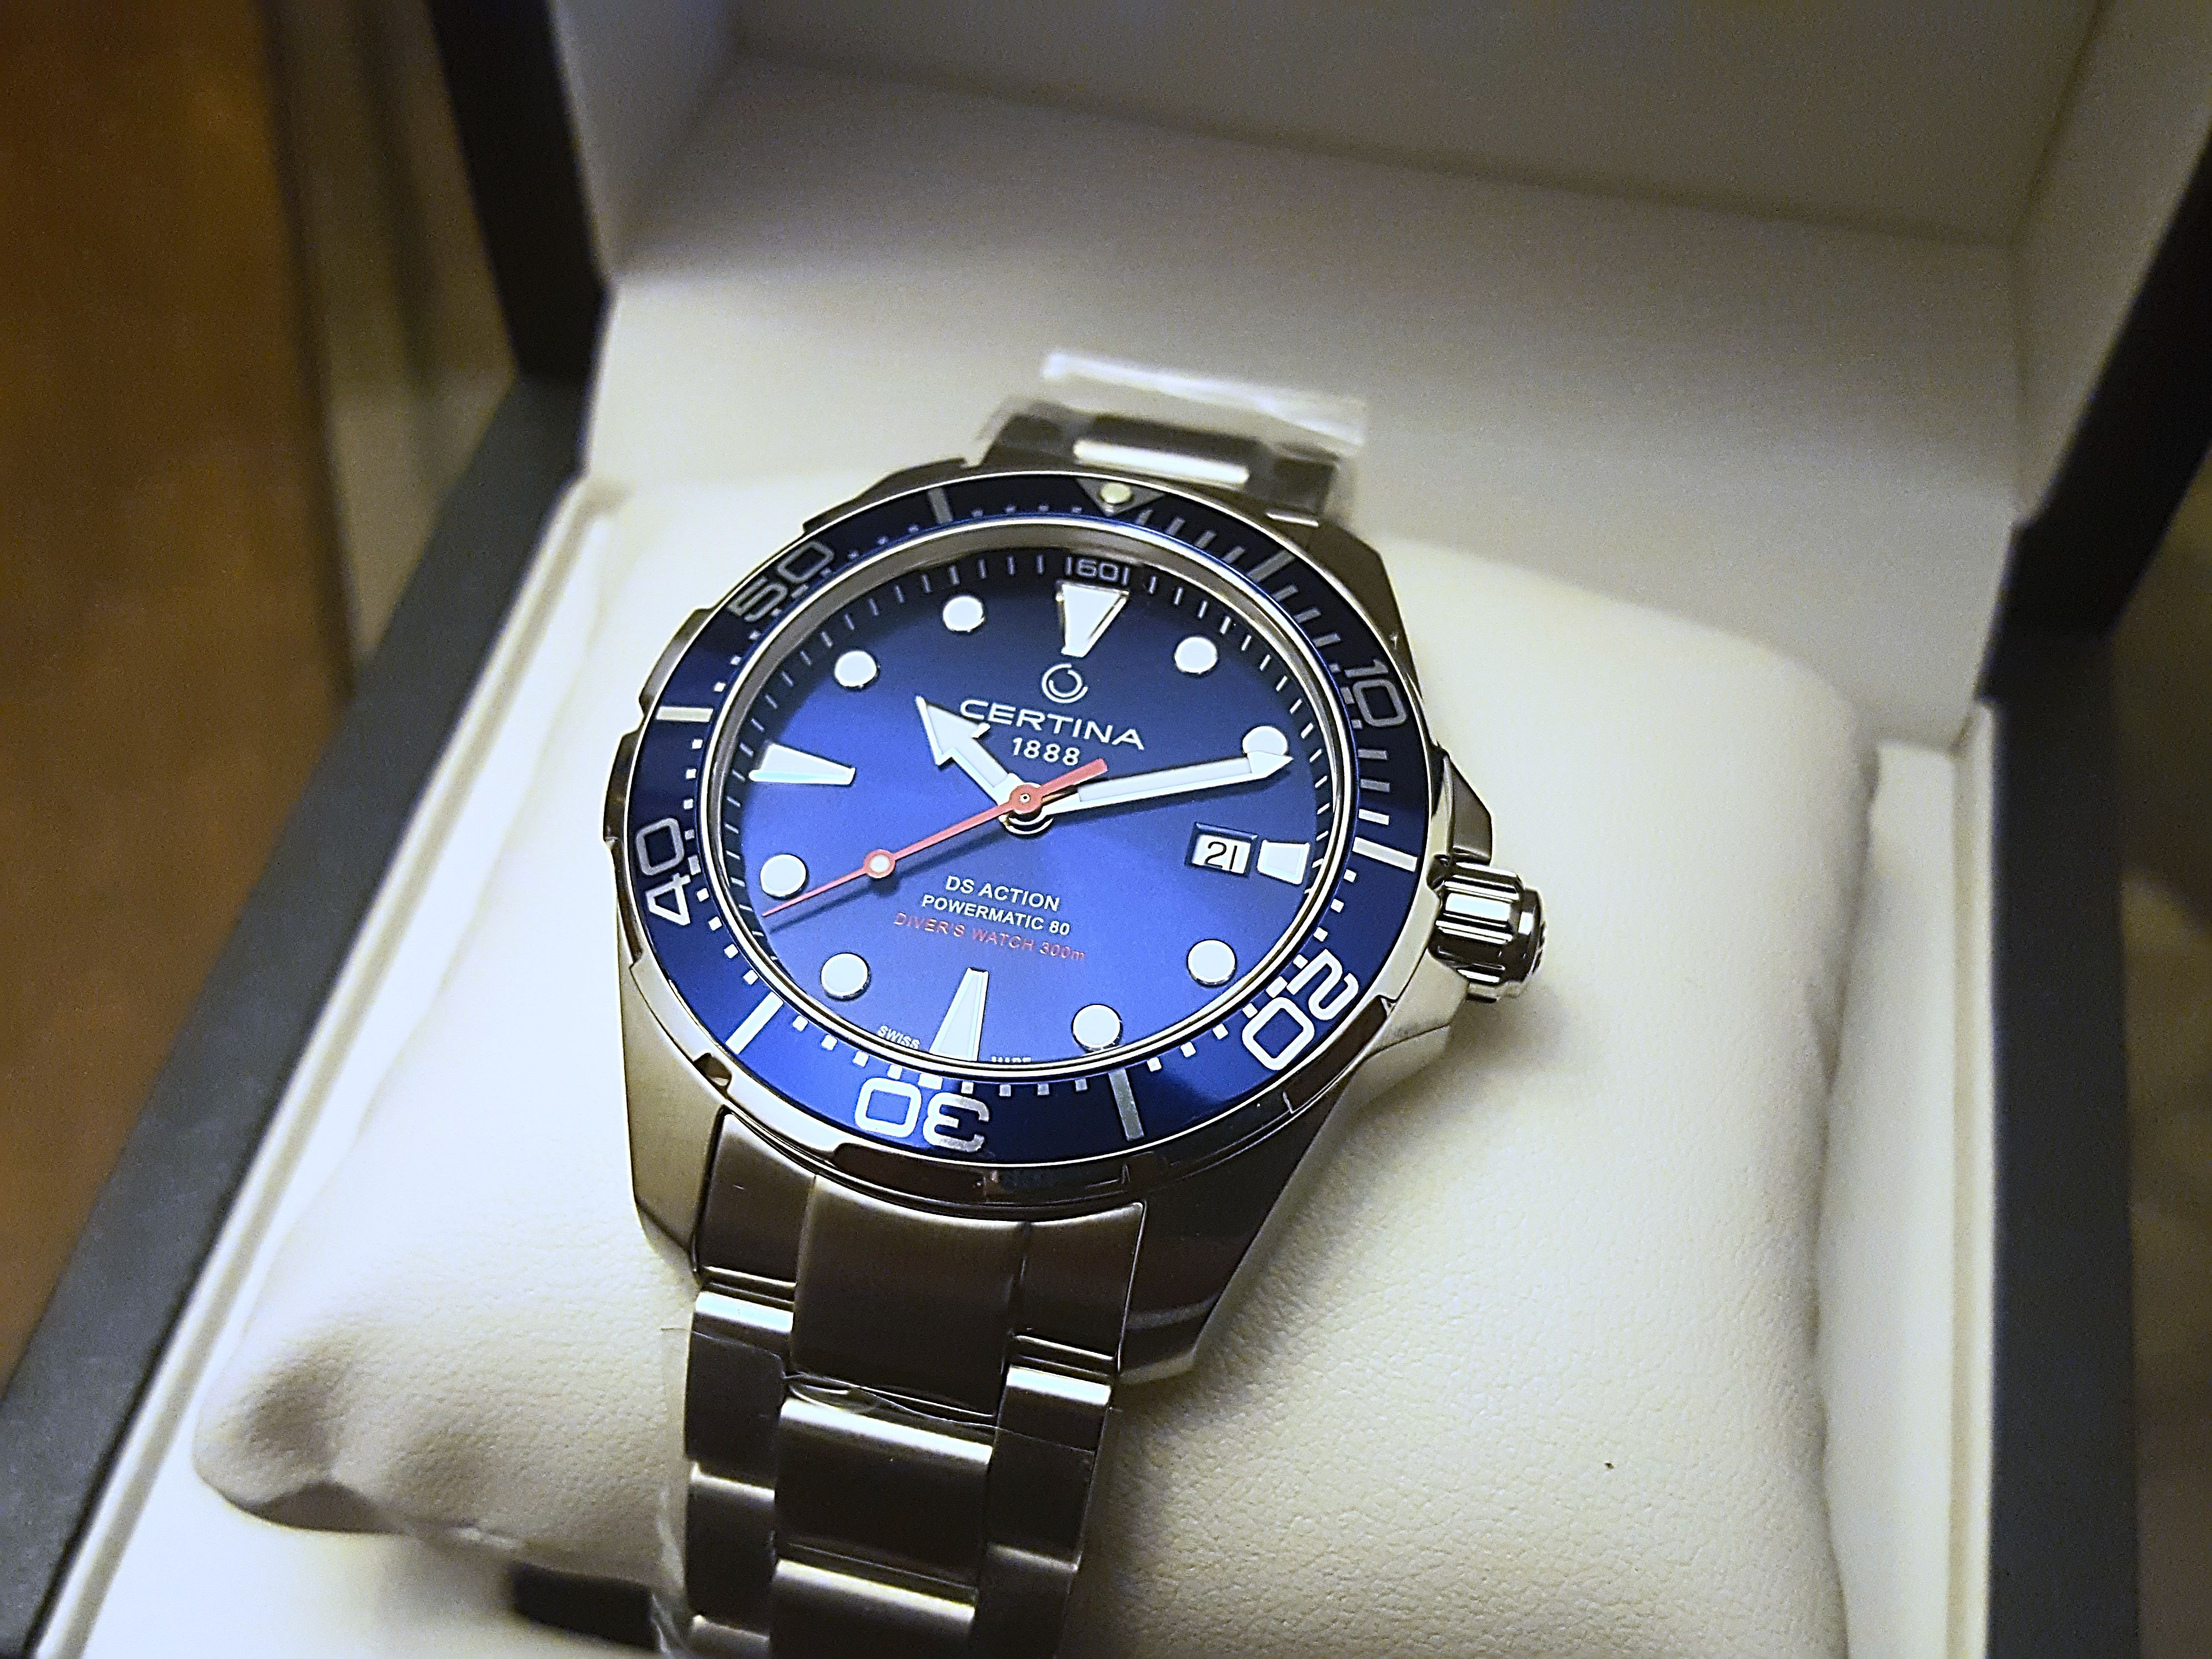 Certina Ds Action Diver Or A Comparison Of Blue Divers Http Ift Tt 2dd4grq Luxury Watches For Men Diver Watches For Men